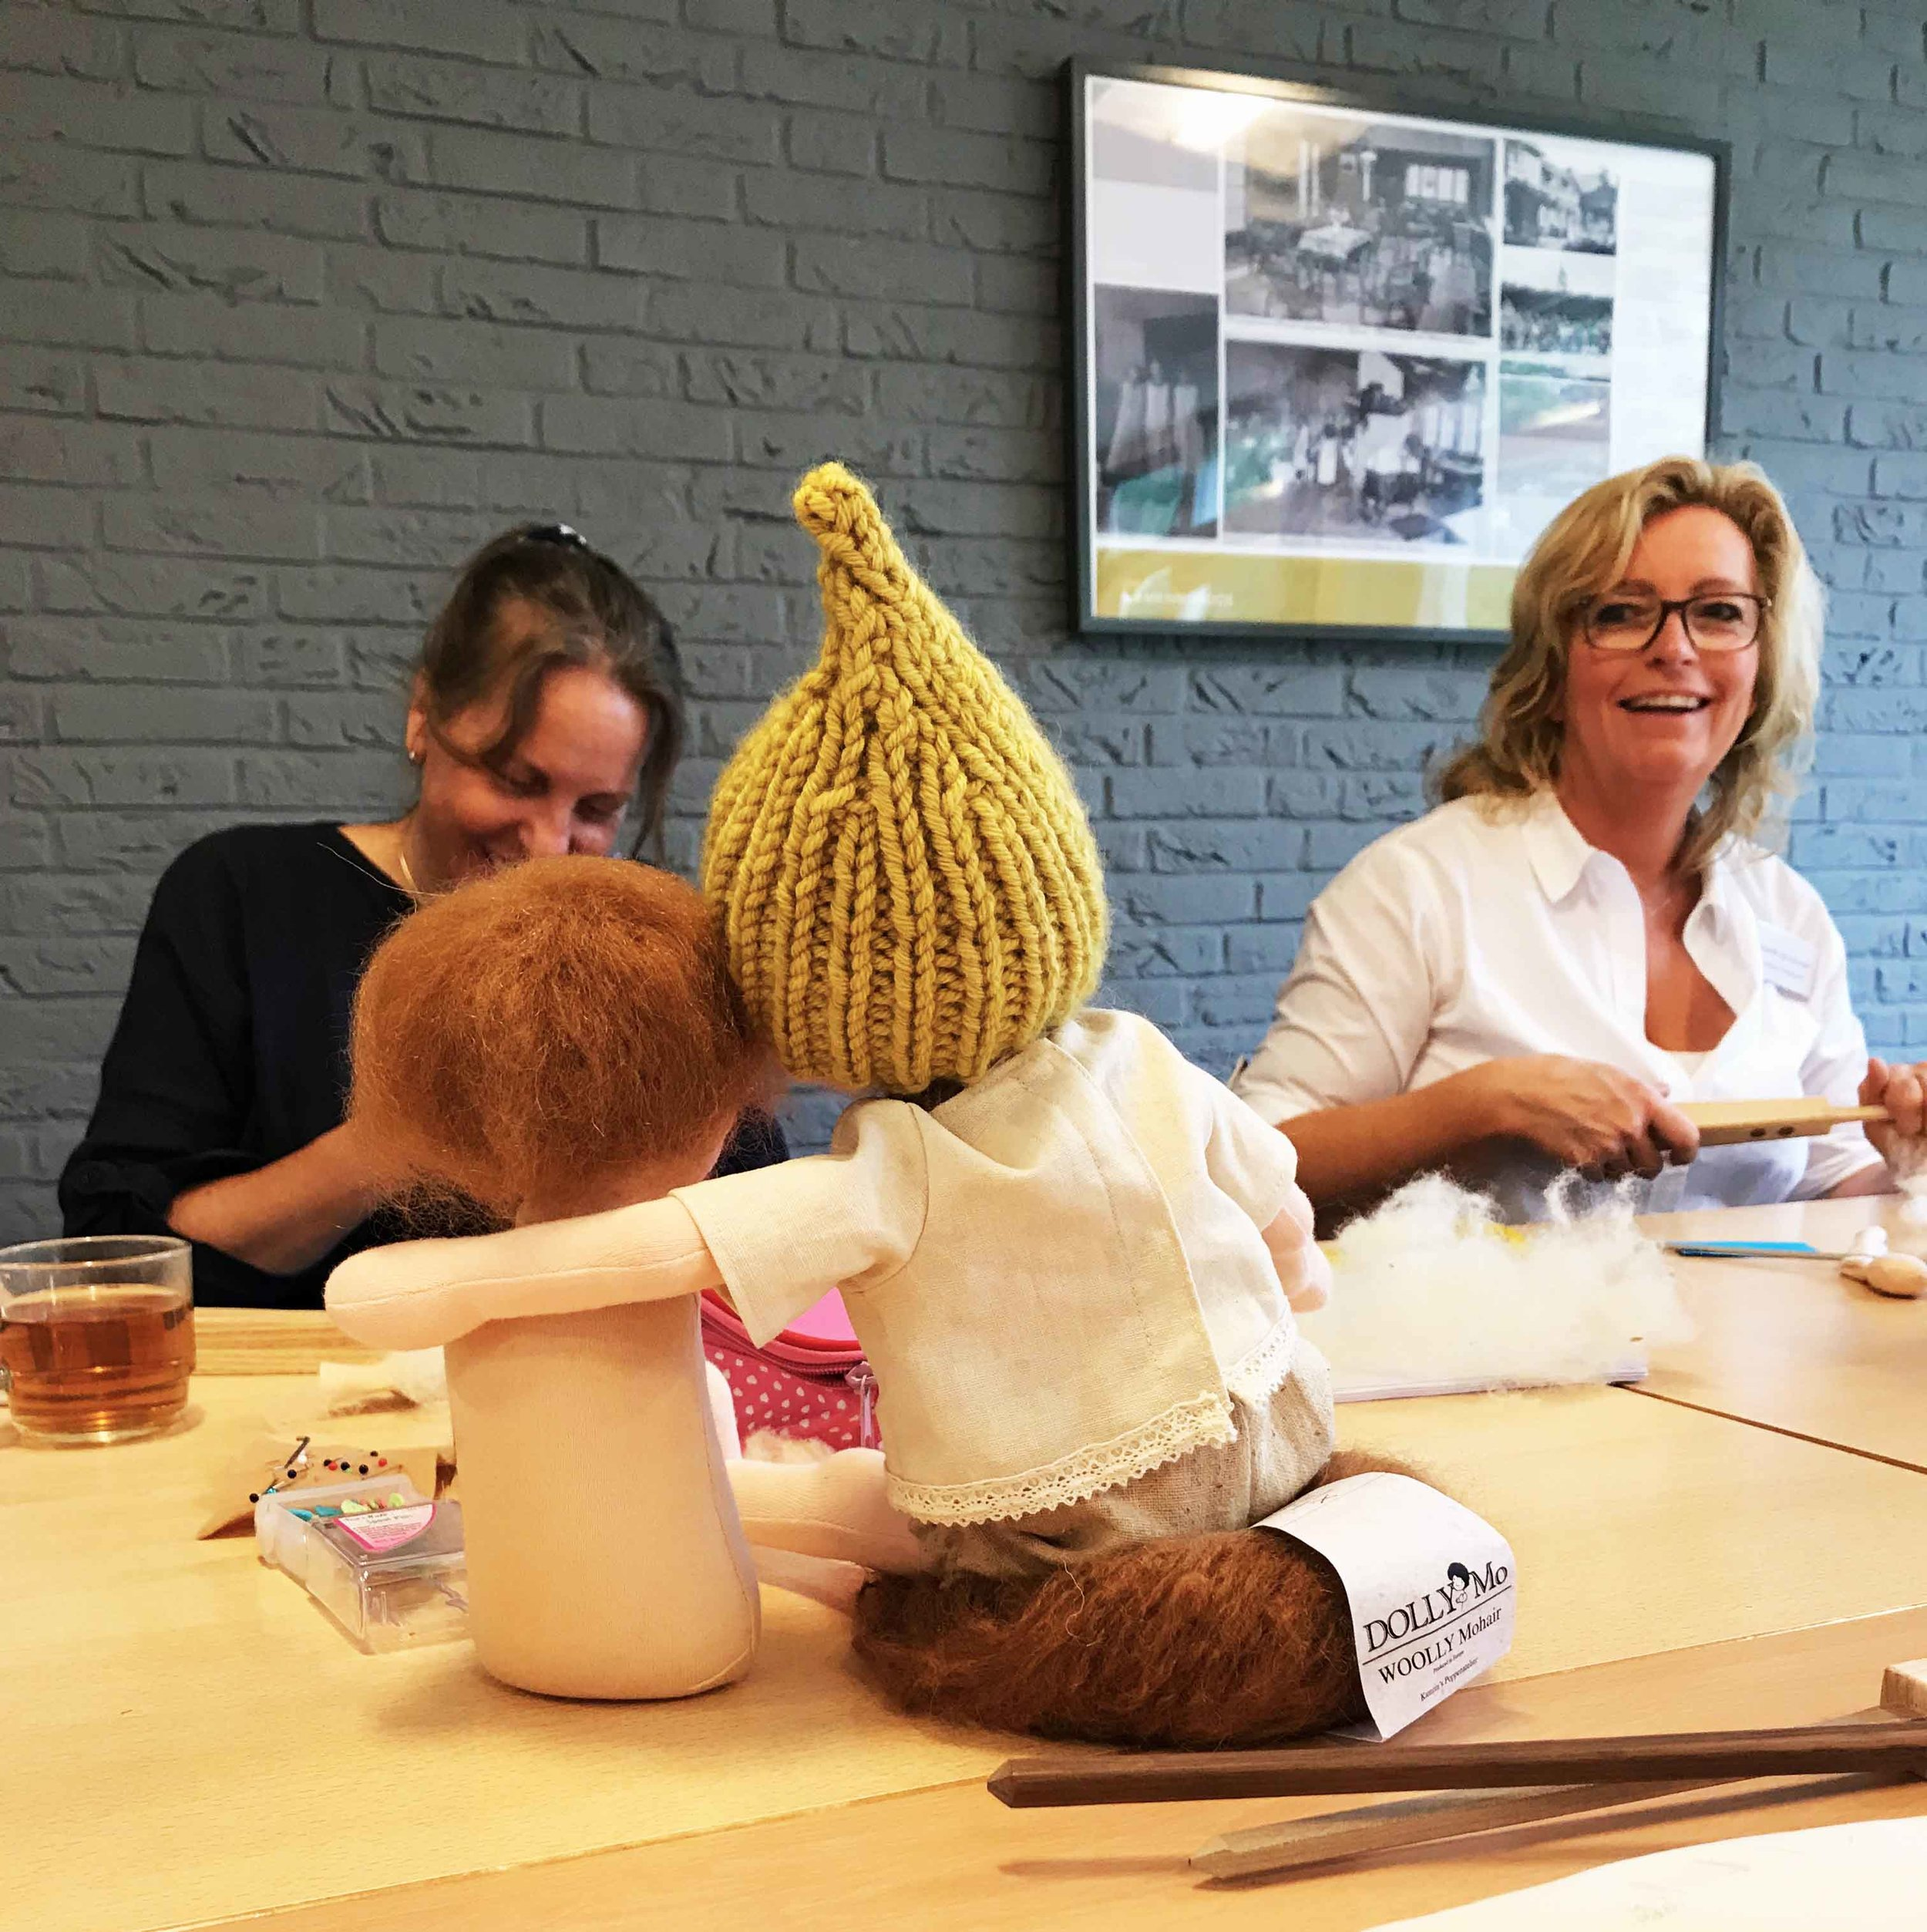 Such a great atmosphere, to sit with others and create dolls. The world really is better for it. Fig and me doll workshop.